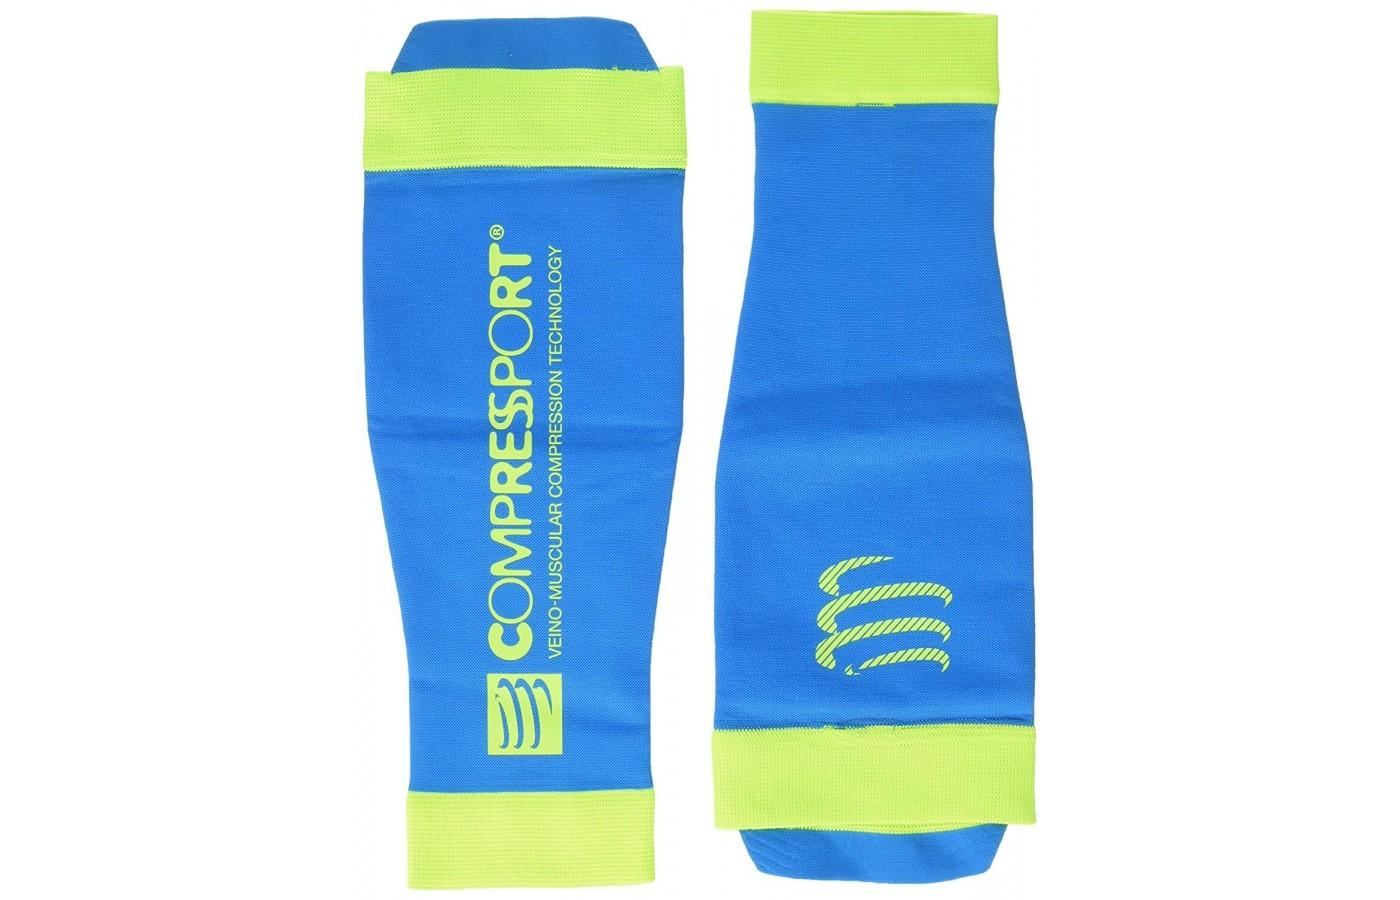 The Compresssport Calf Sleeves are made with tear-proof material